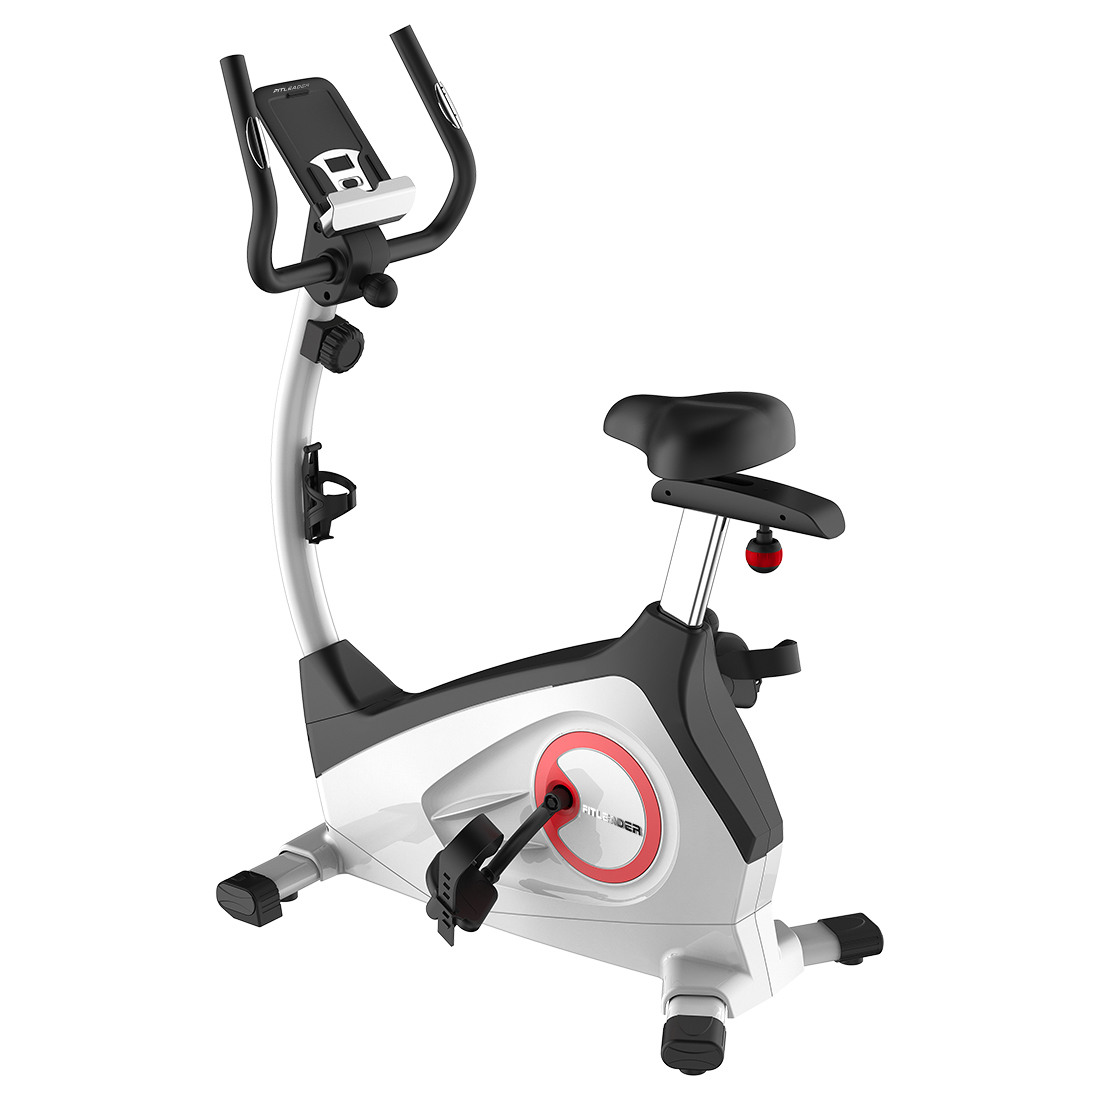 Fitleader UF1 Fitness Bicycle Stationary Magnetic Exercise